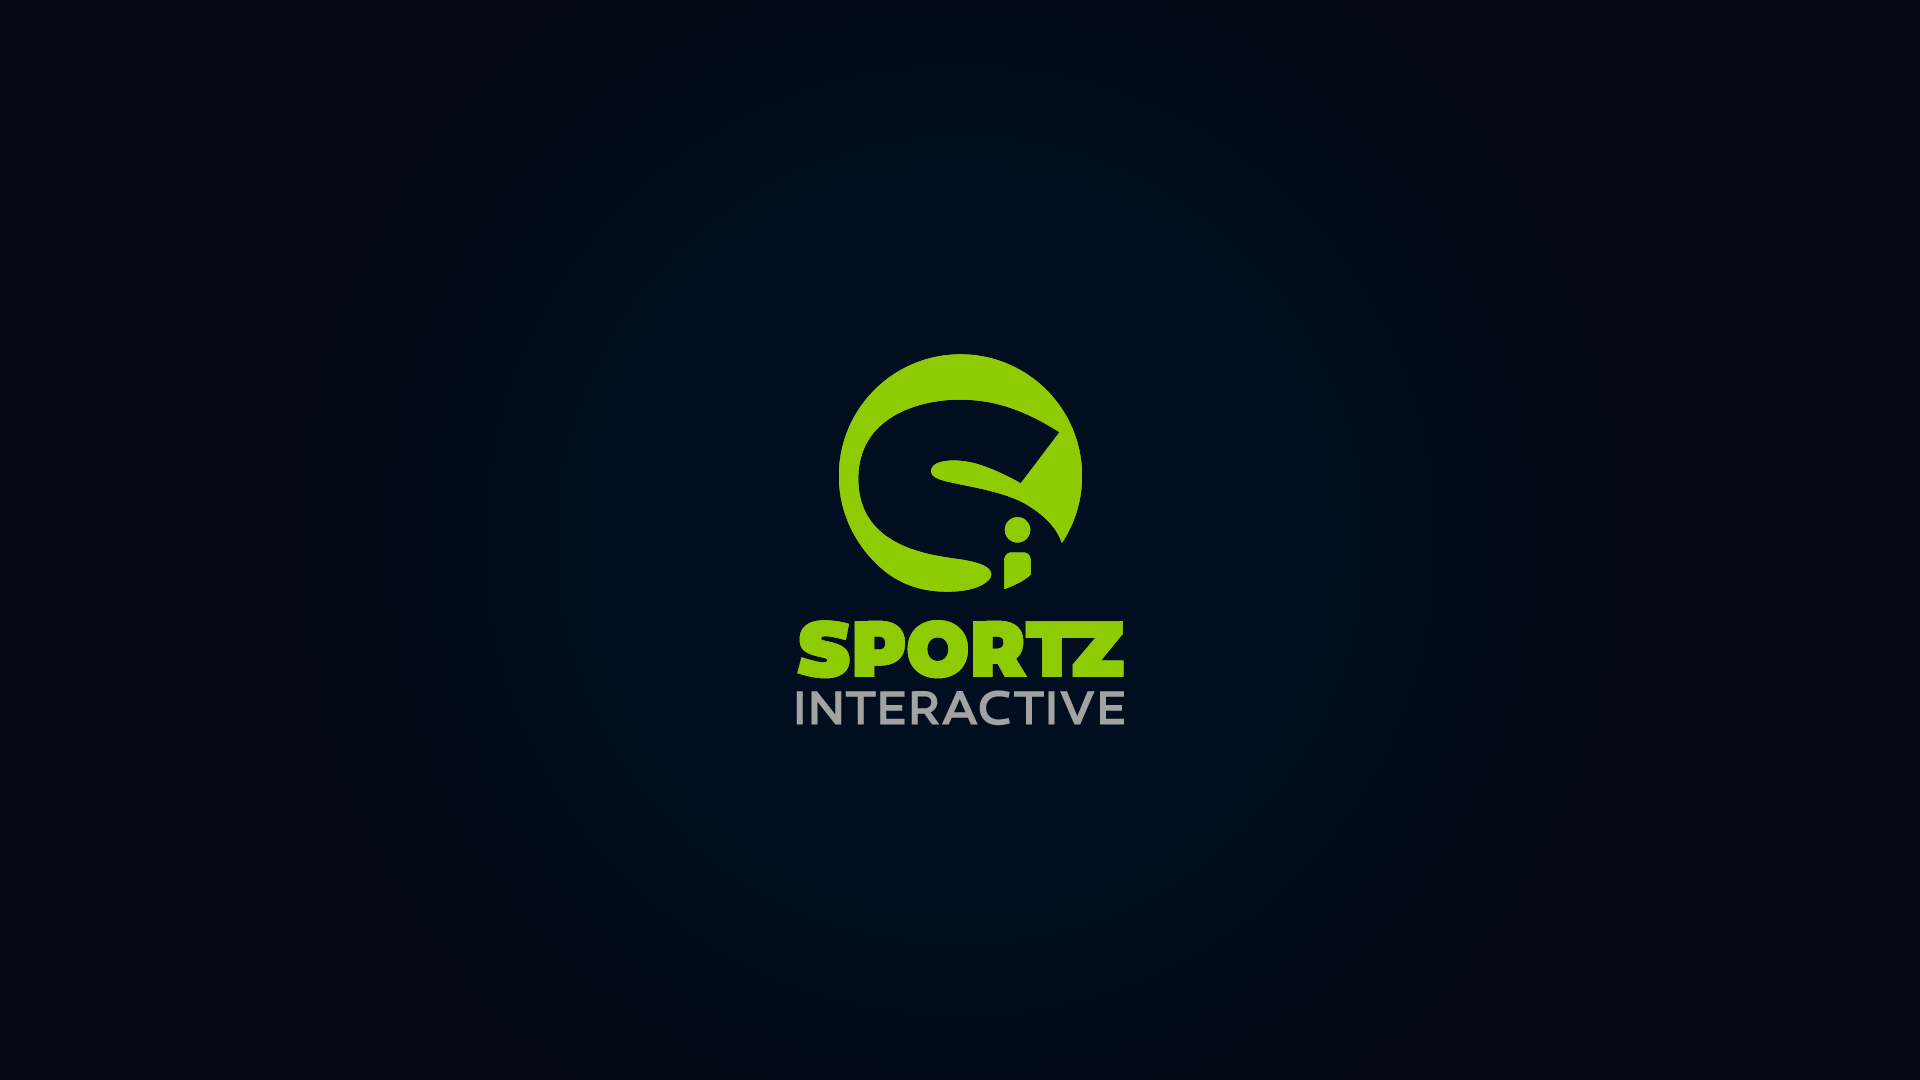 One stop destination for all sports digital solutions